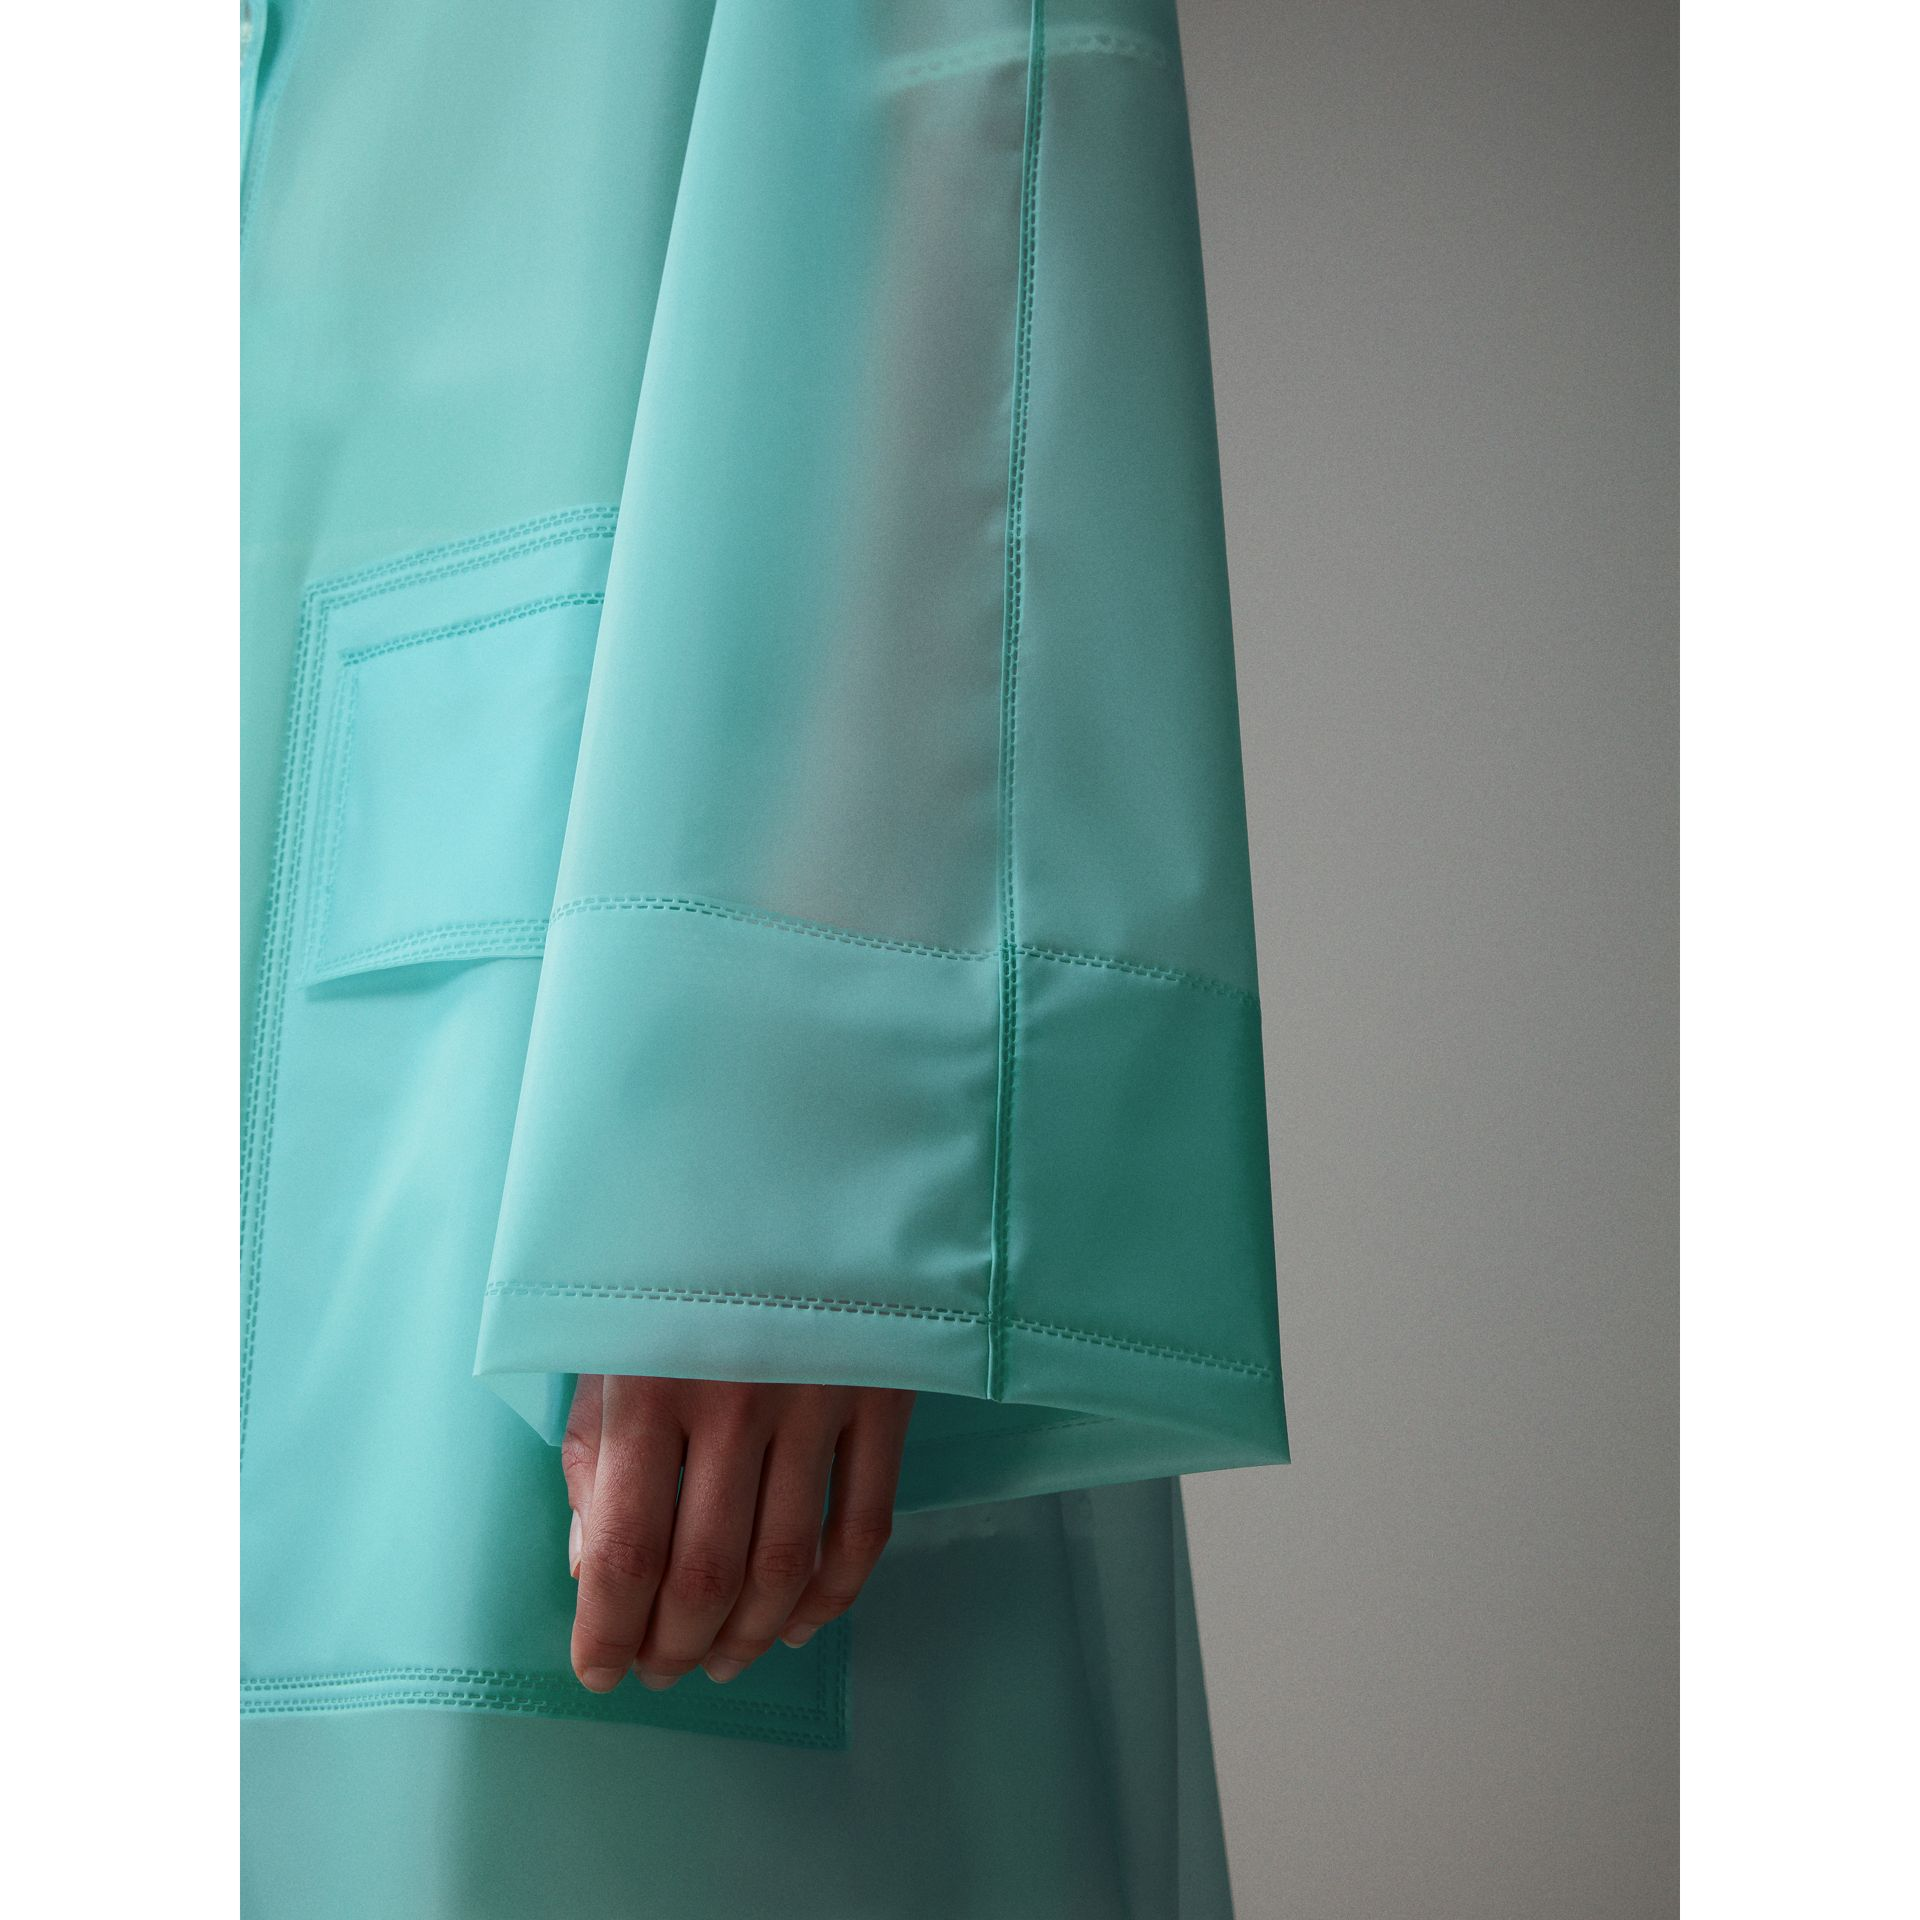 Soft-touch Plastic Car Coat in Turquoise - Women | Burberry Canada - gallery image 4